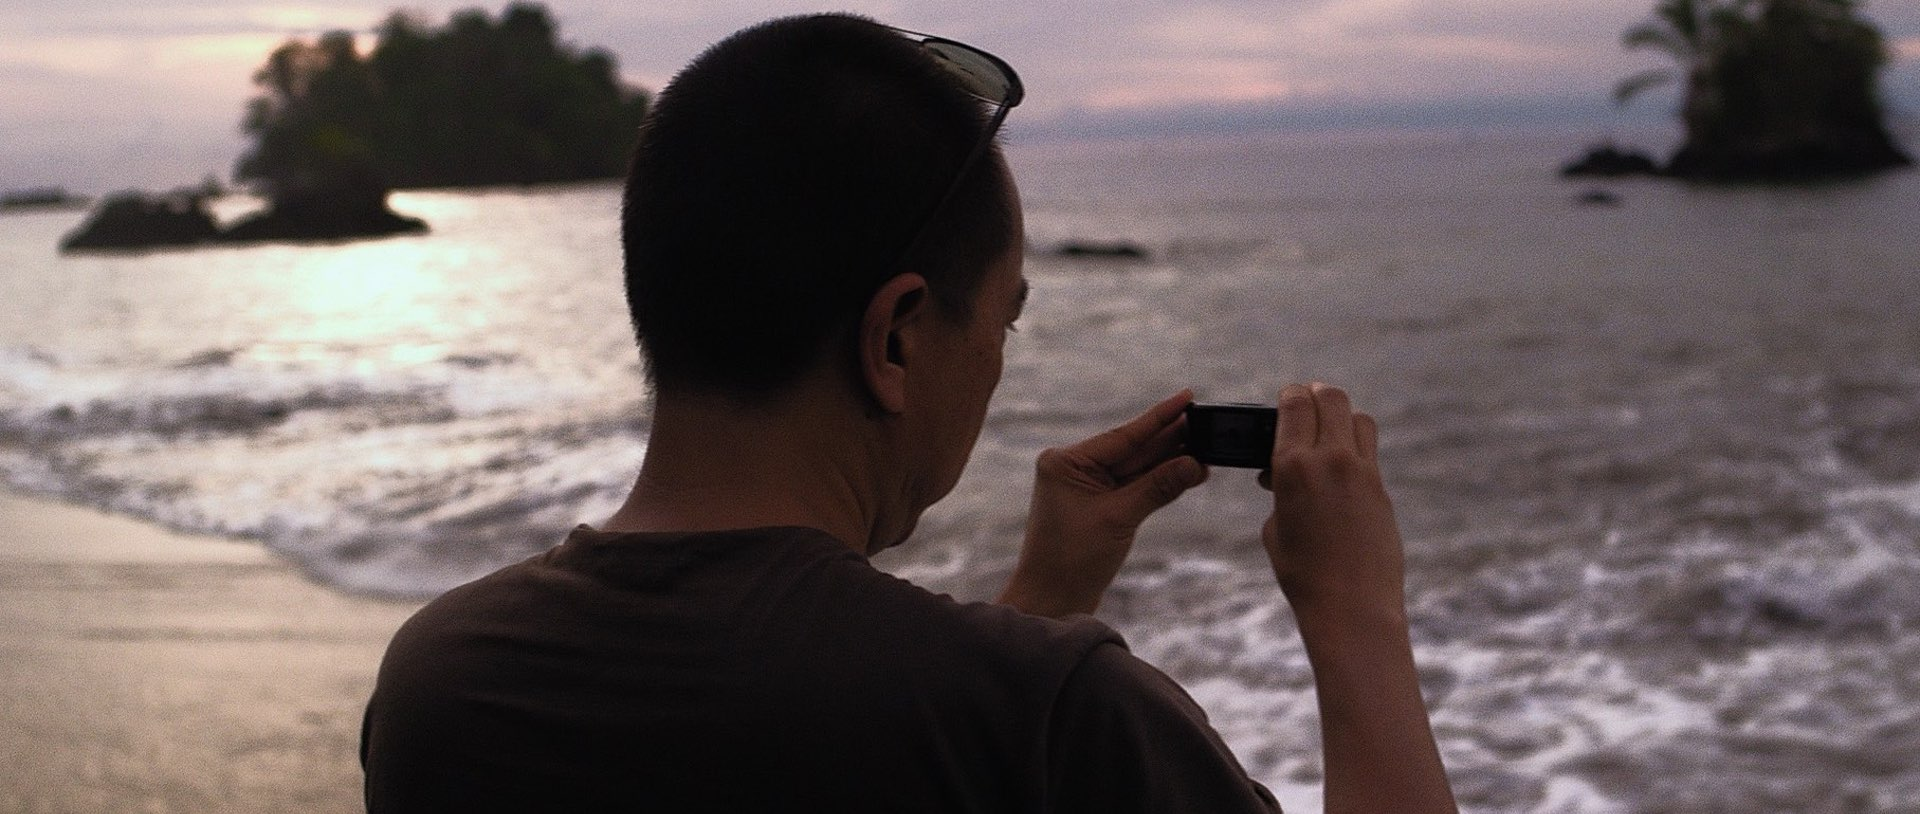 Still image from the feature documentary A.W. A Portrait of Apichatpong Weerasethakul. Directed by Connor Jessup. Colorist Morgana McKenzie